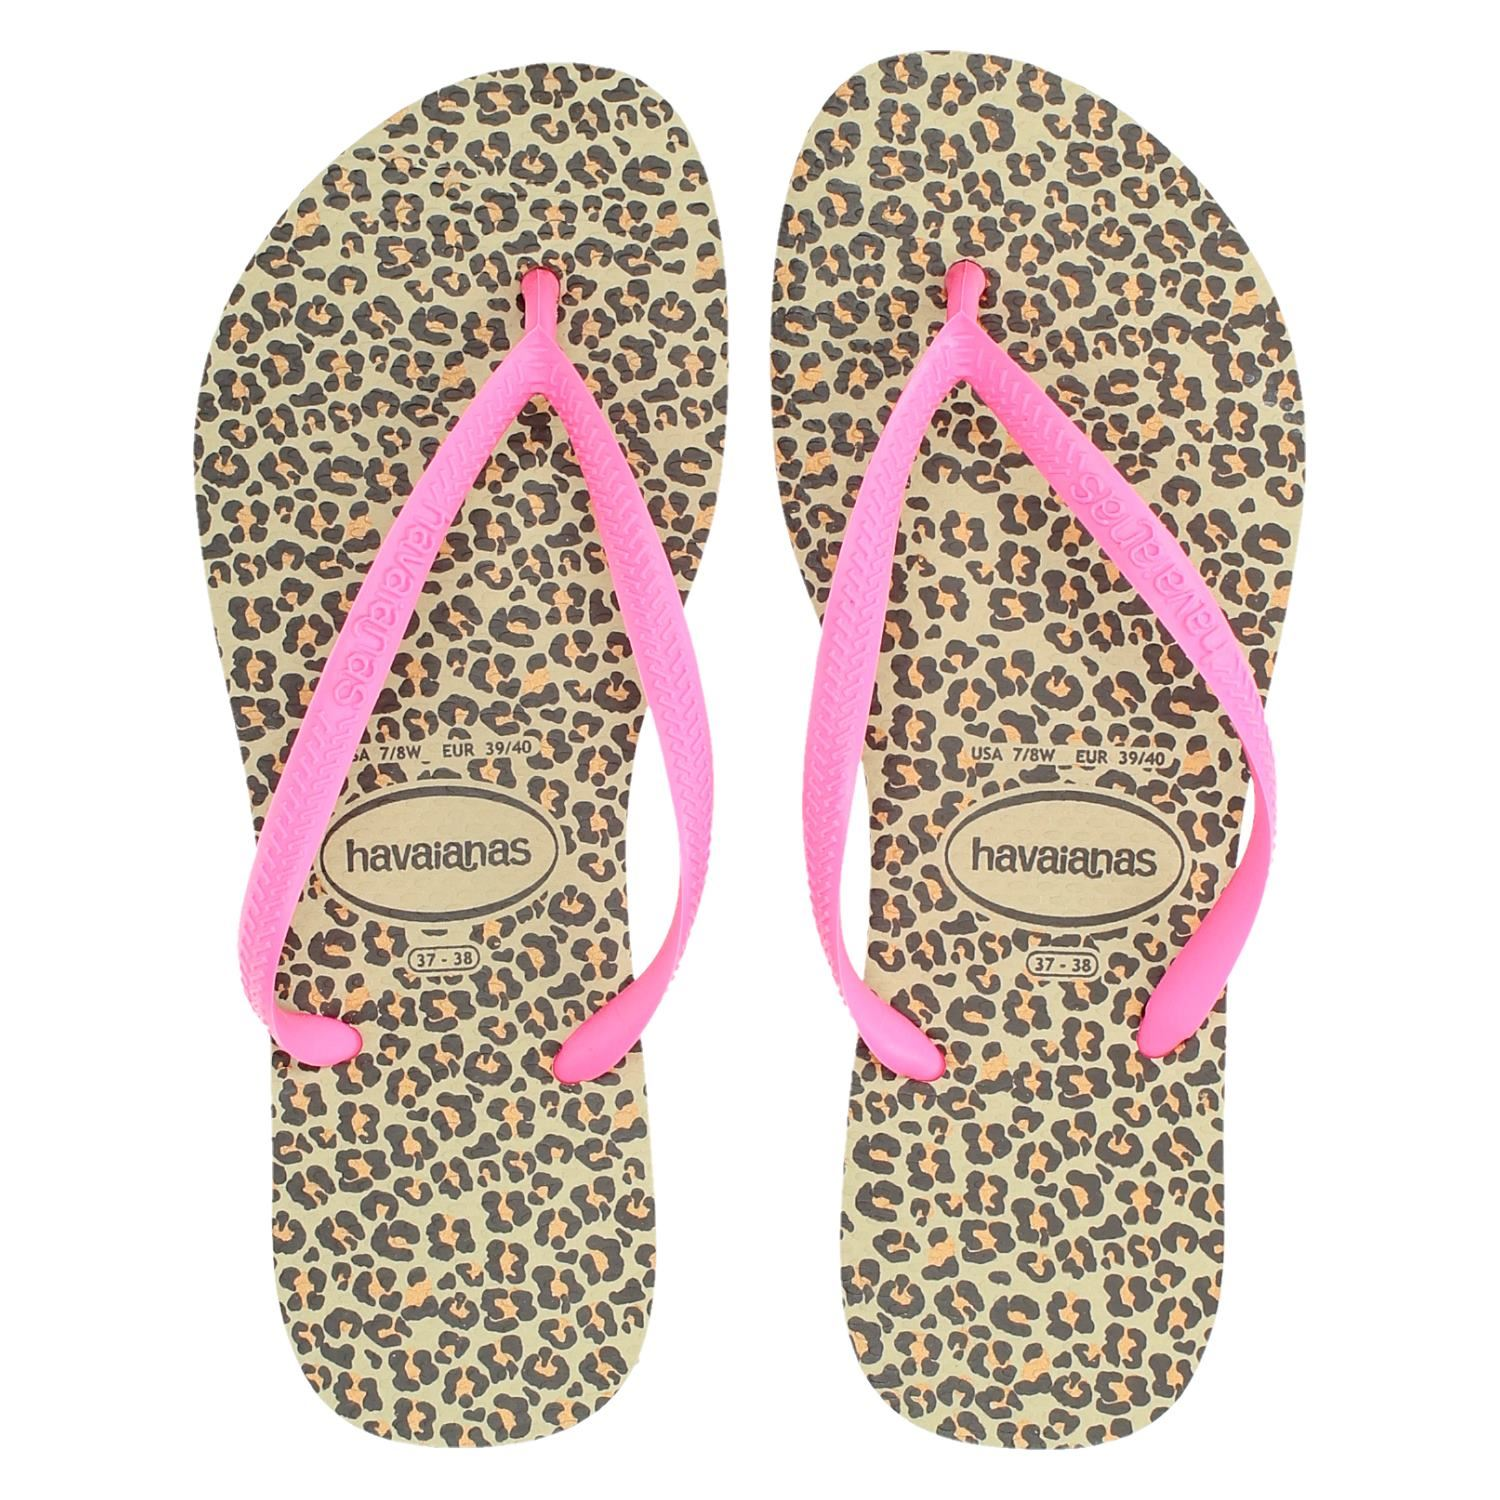 952c59afc9f Havaianas Slimanimal dames slippers roze